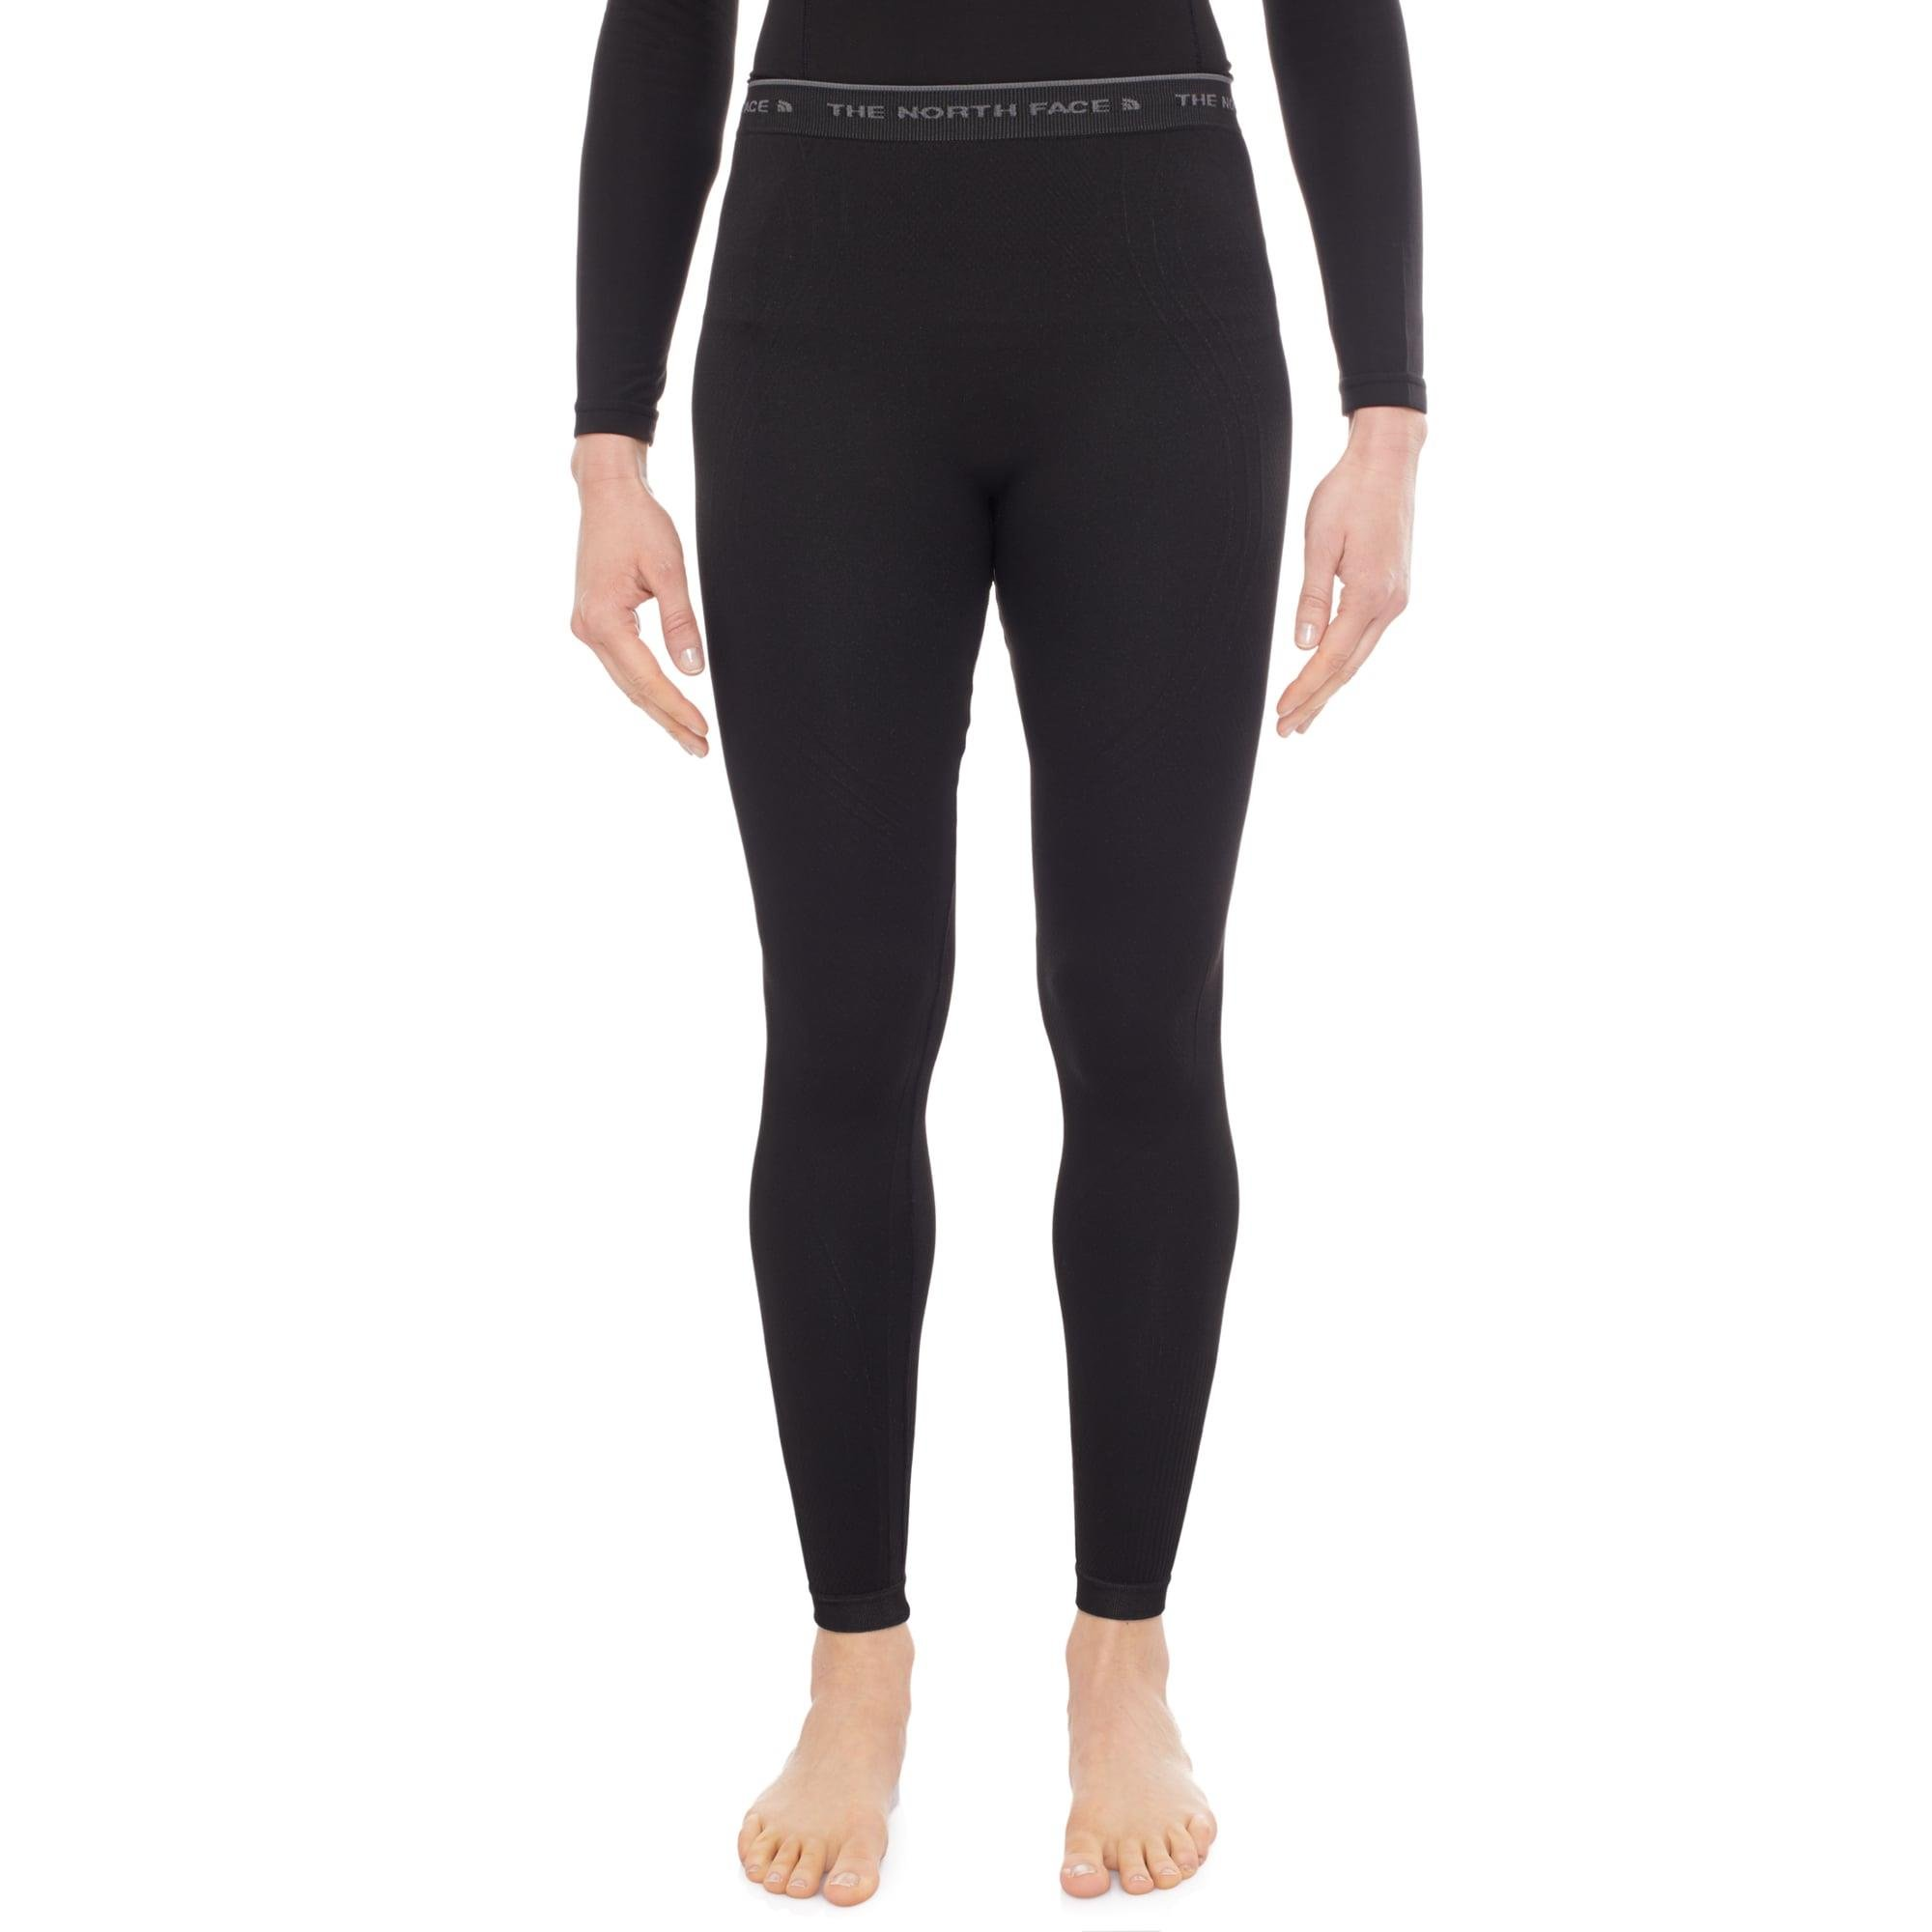 Legginsy termoaktywne The North Face Hybrid Tights T0C217JK3